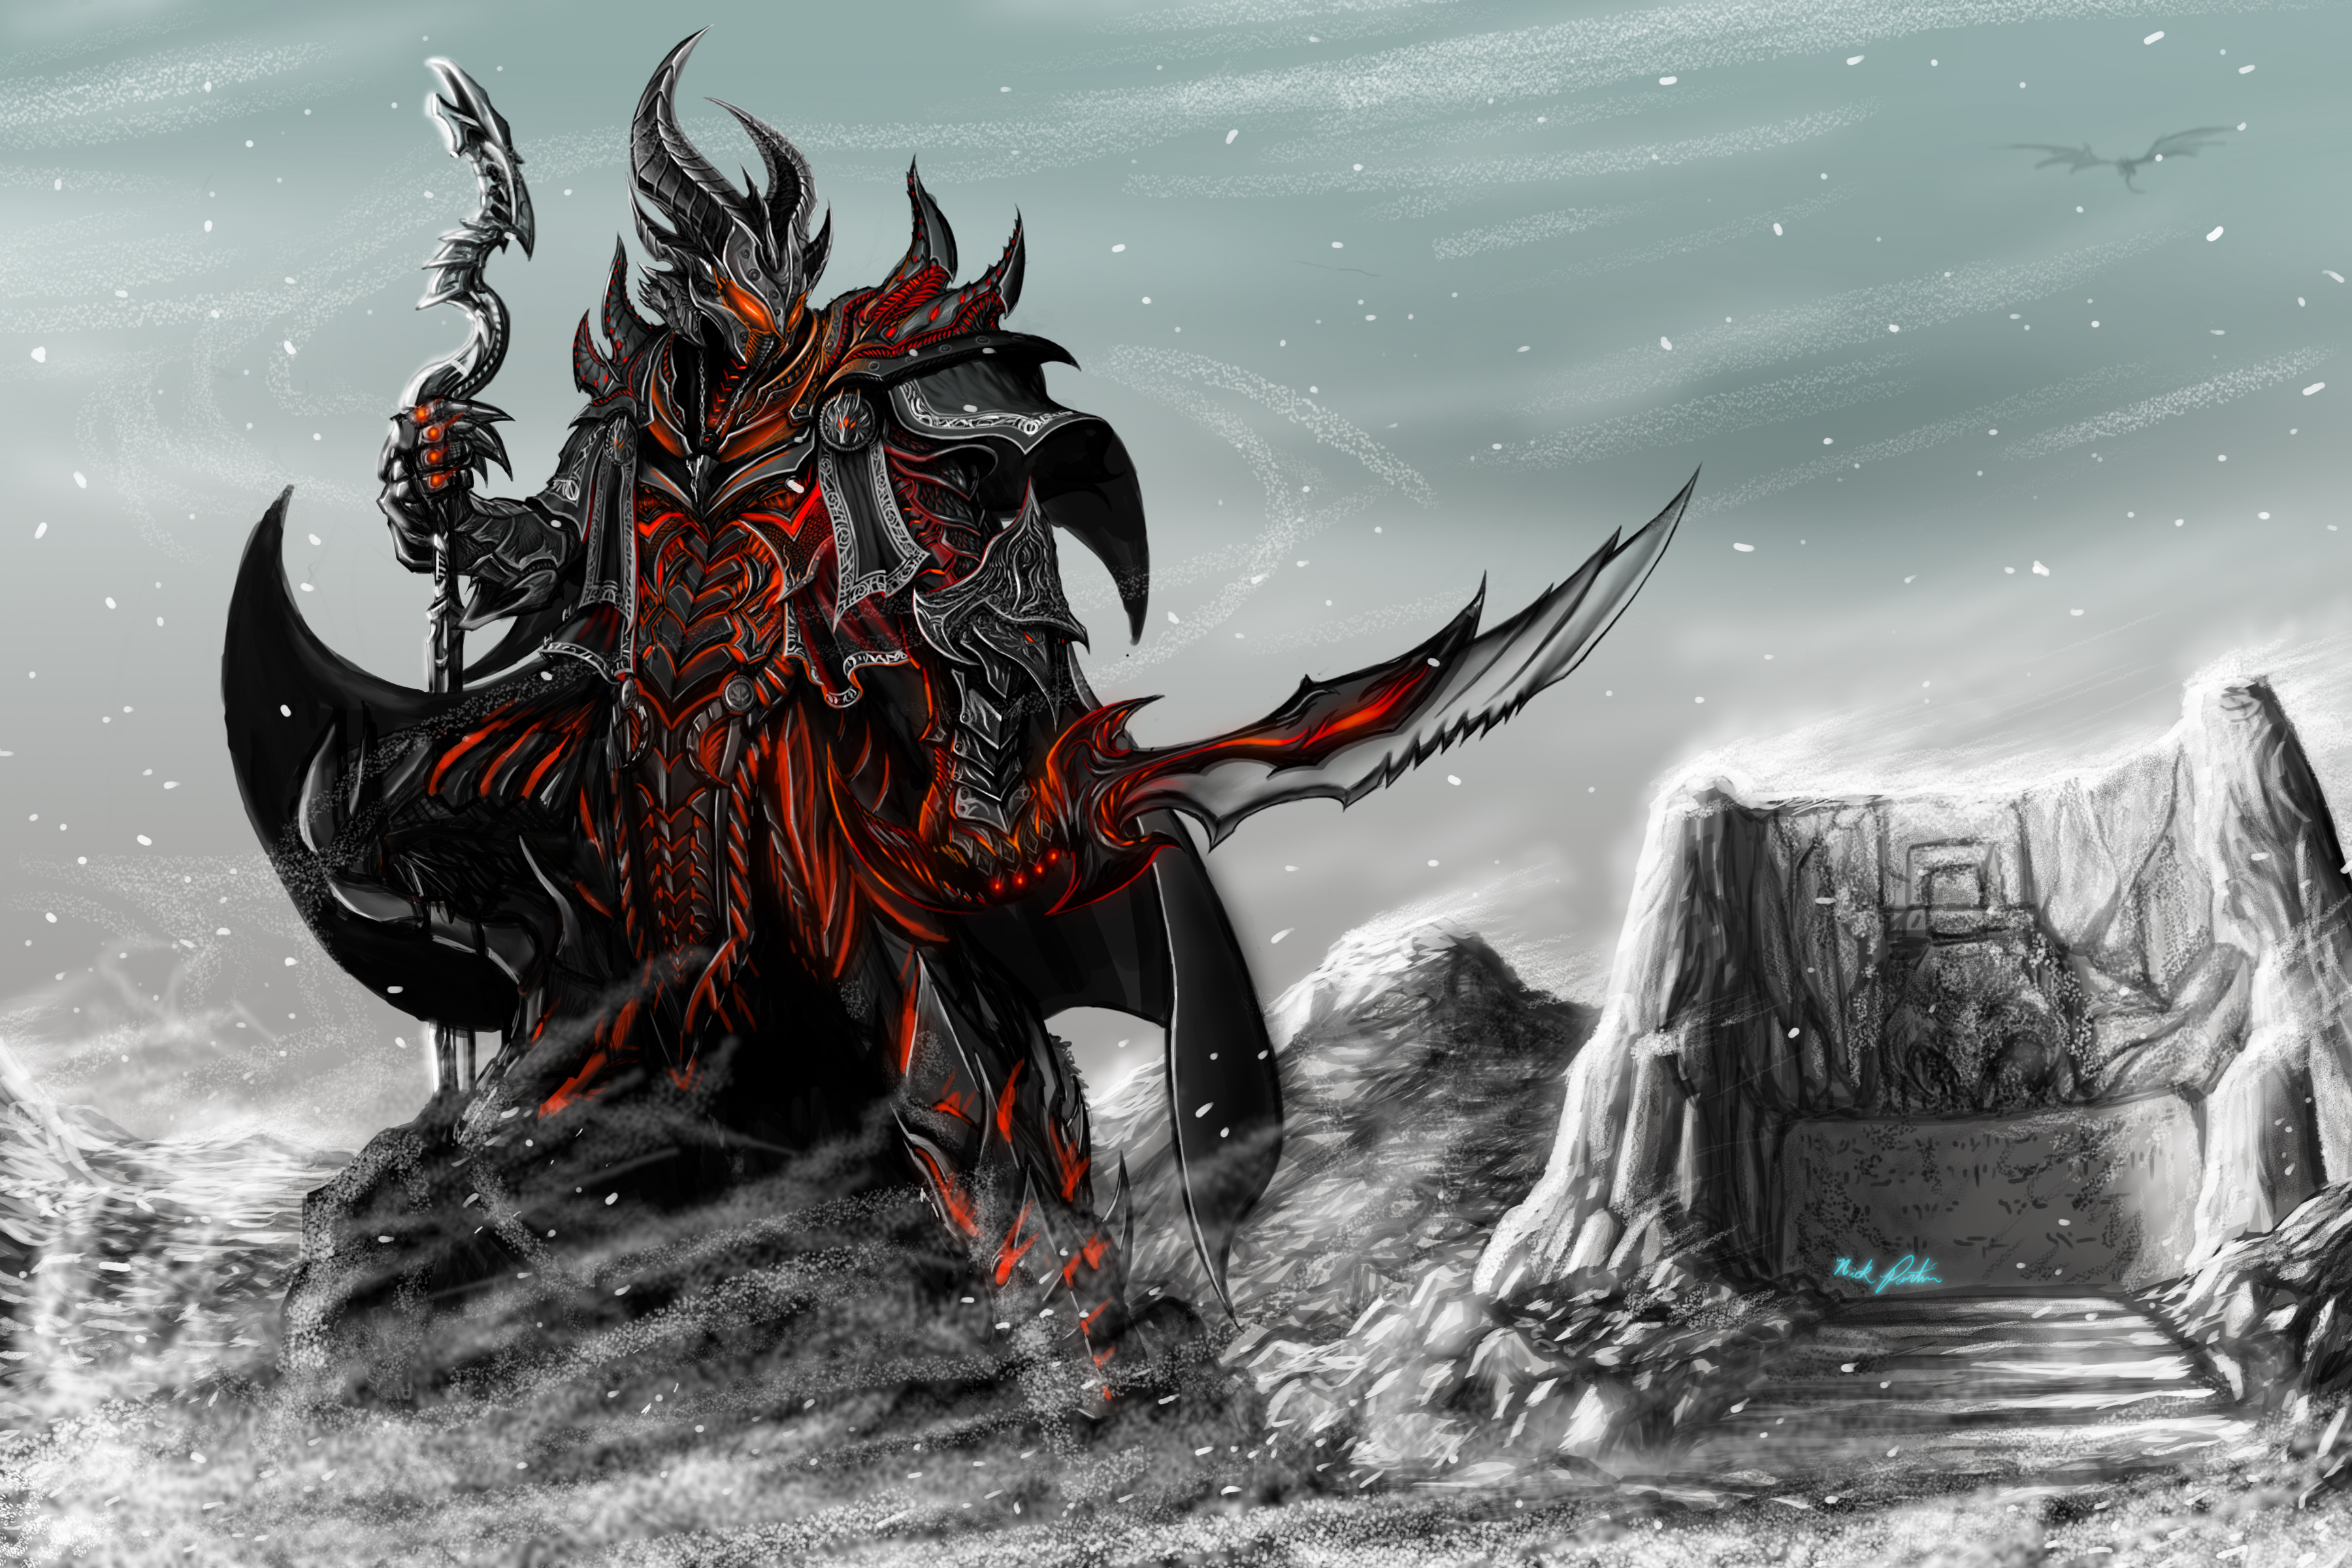 Skyrim merry christmas by partin arts on deviantart for Cool christmas art